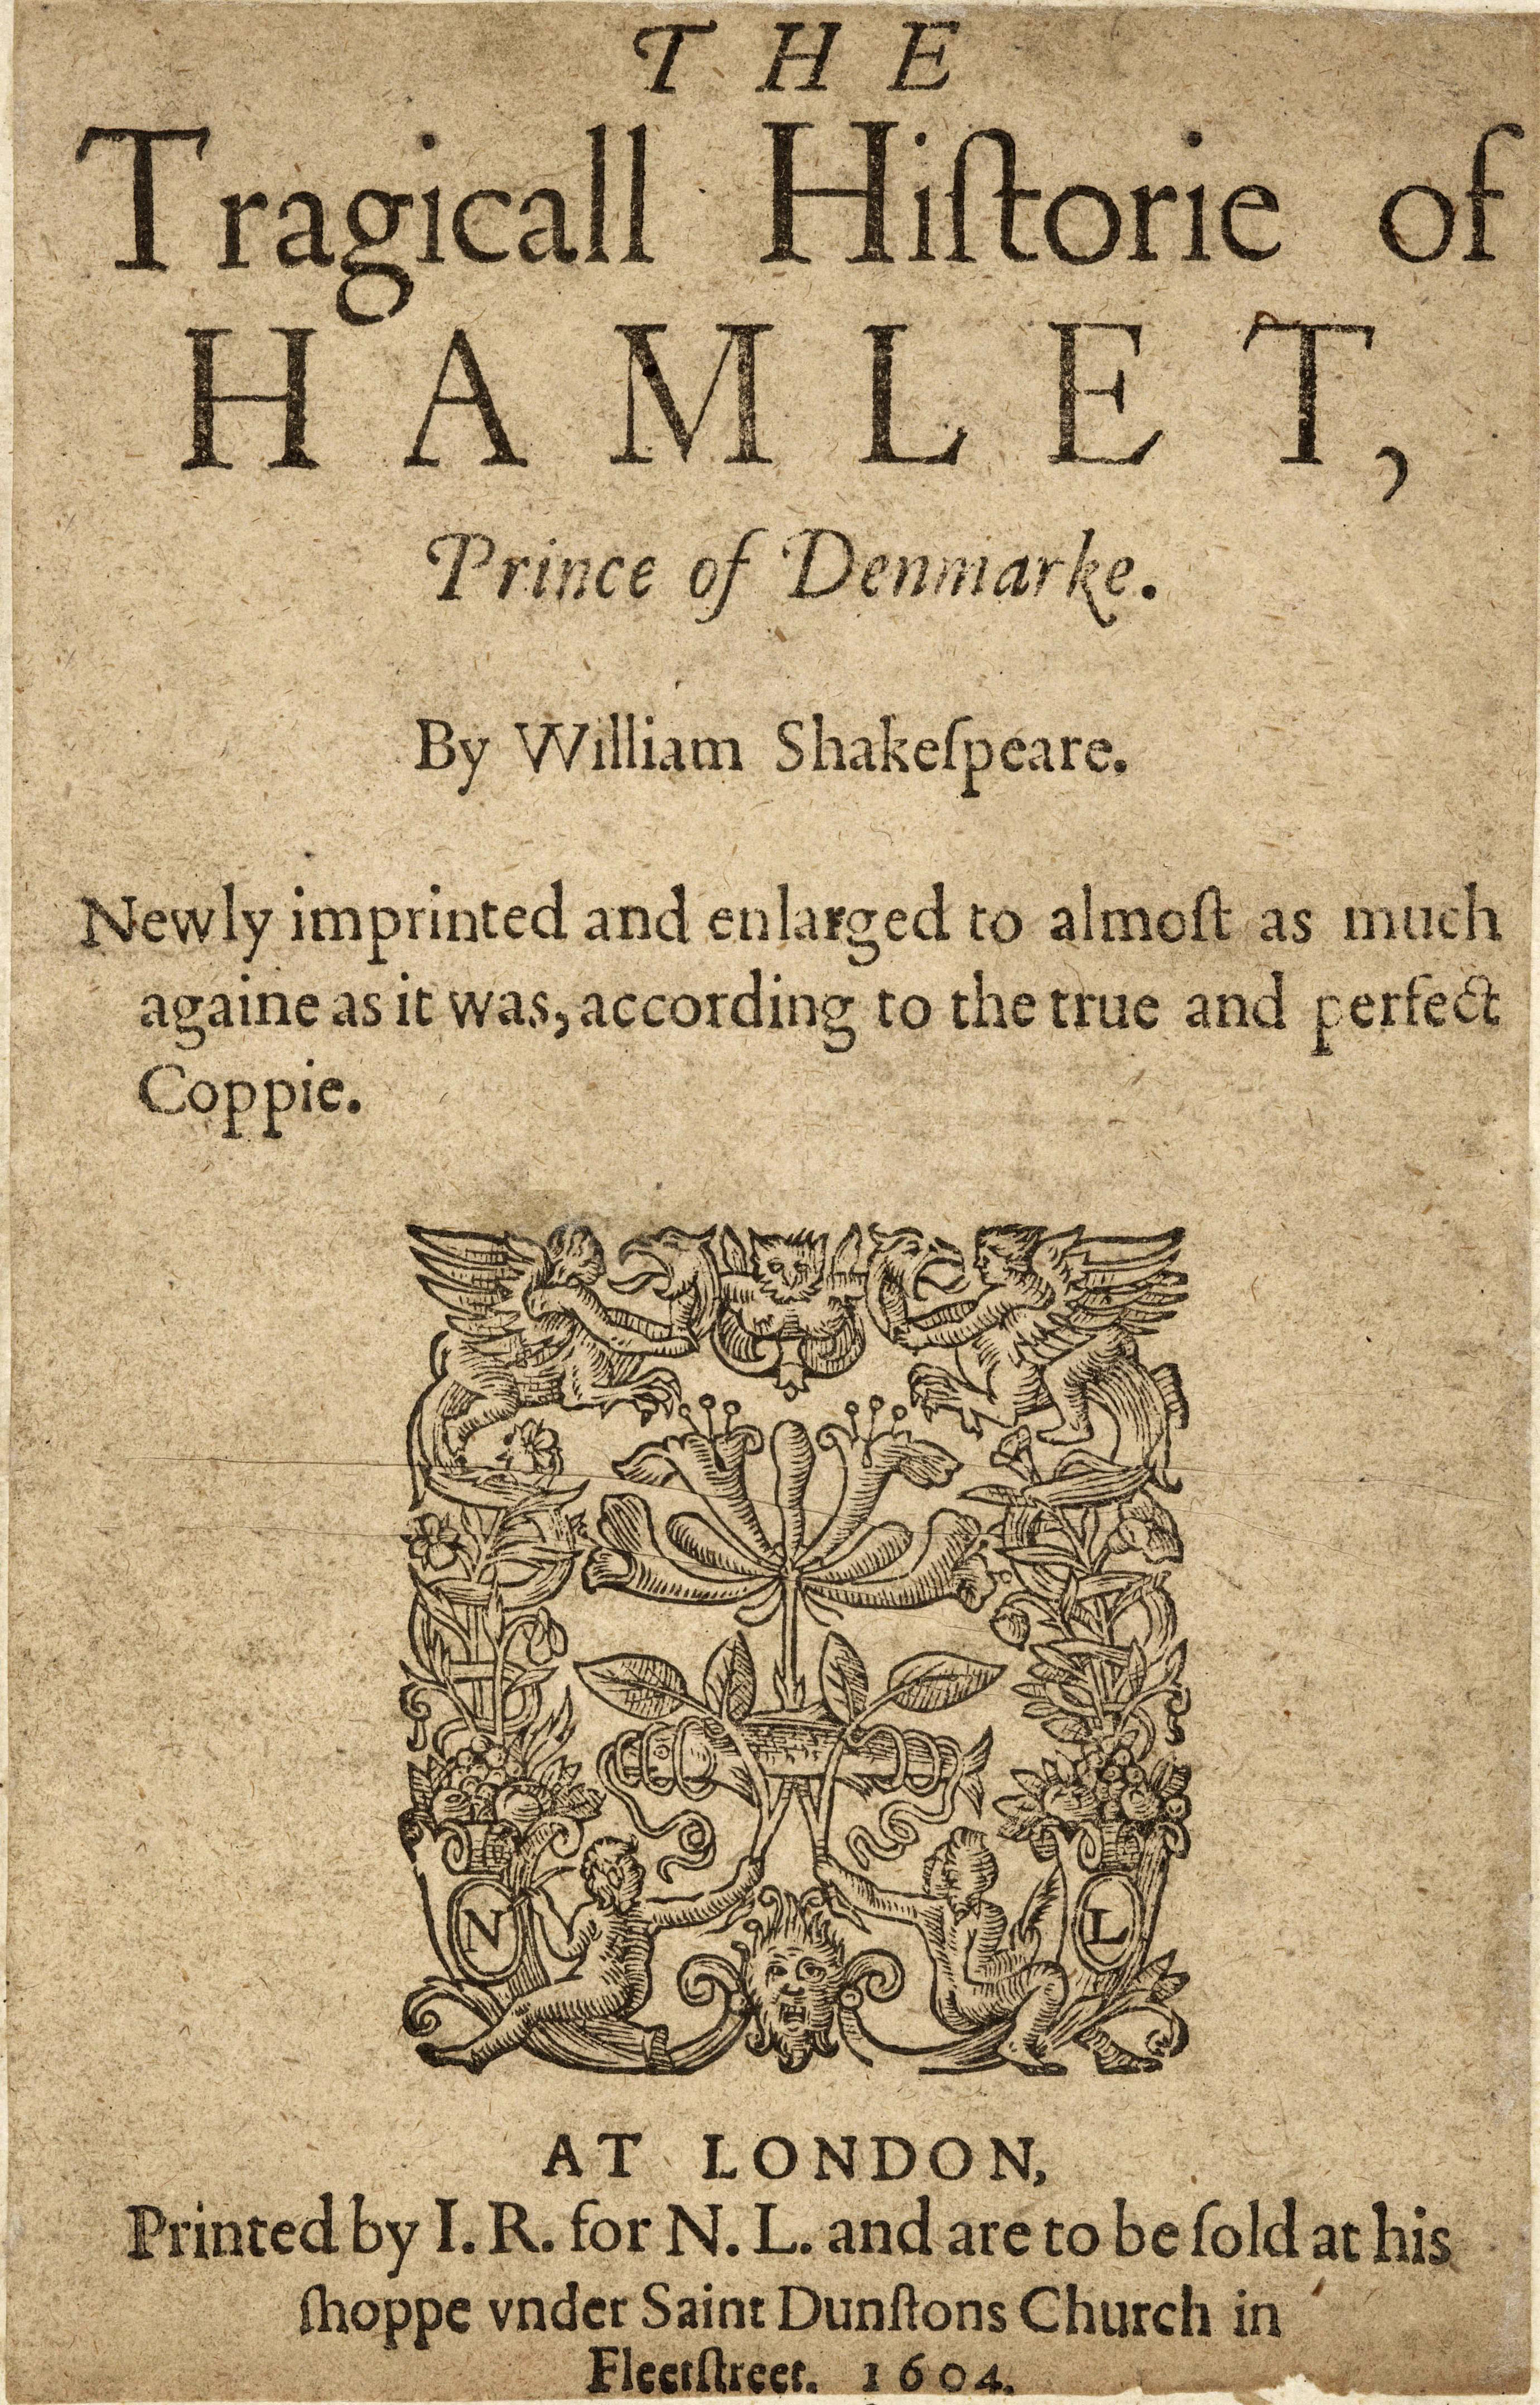 second character role in hamlet by william Hamlet, written by william shakespeare, is a tragedy concerning a young prince named hamlet and his quest to avenge his father's death one cold night, hamlet is told by an apparition claiming to be his father that hamlet's uncle claudius murdered king hamlet.